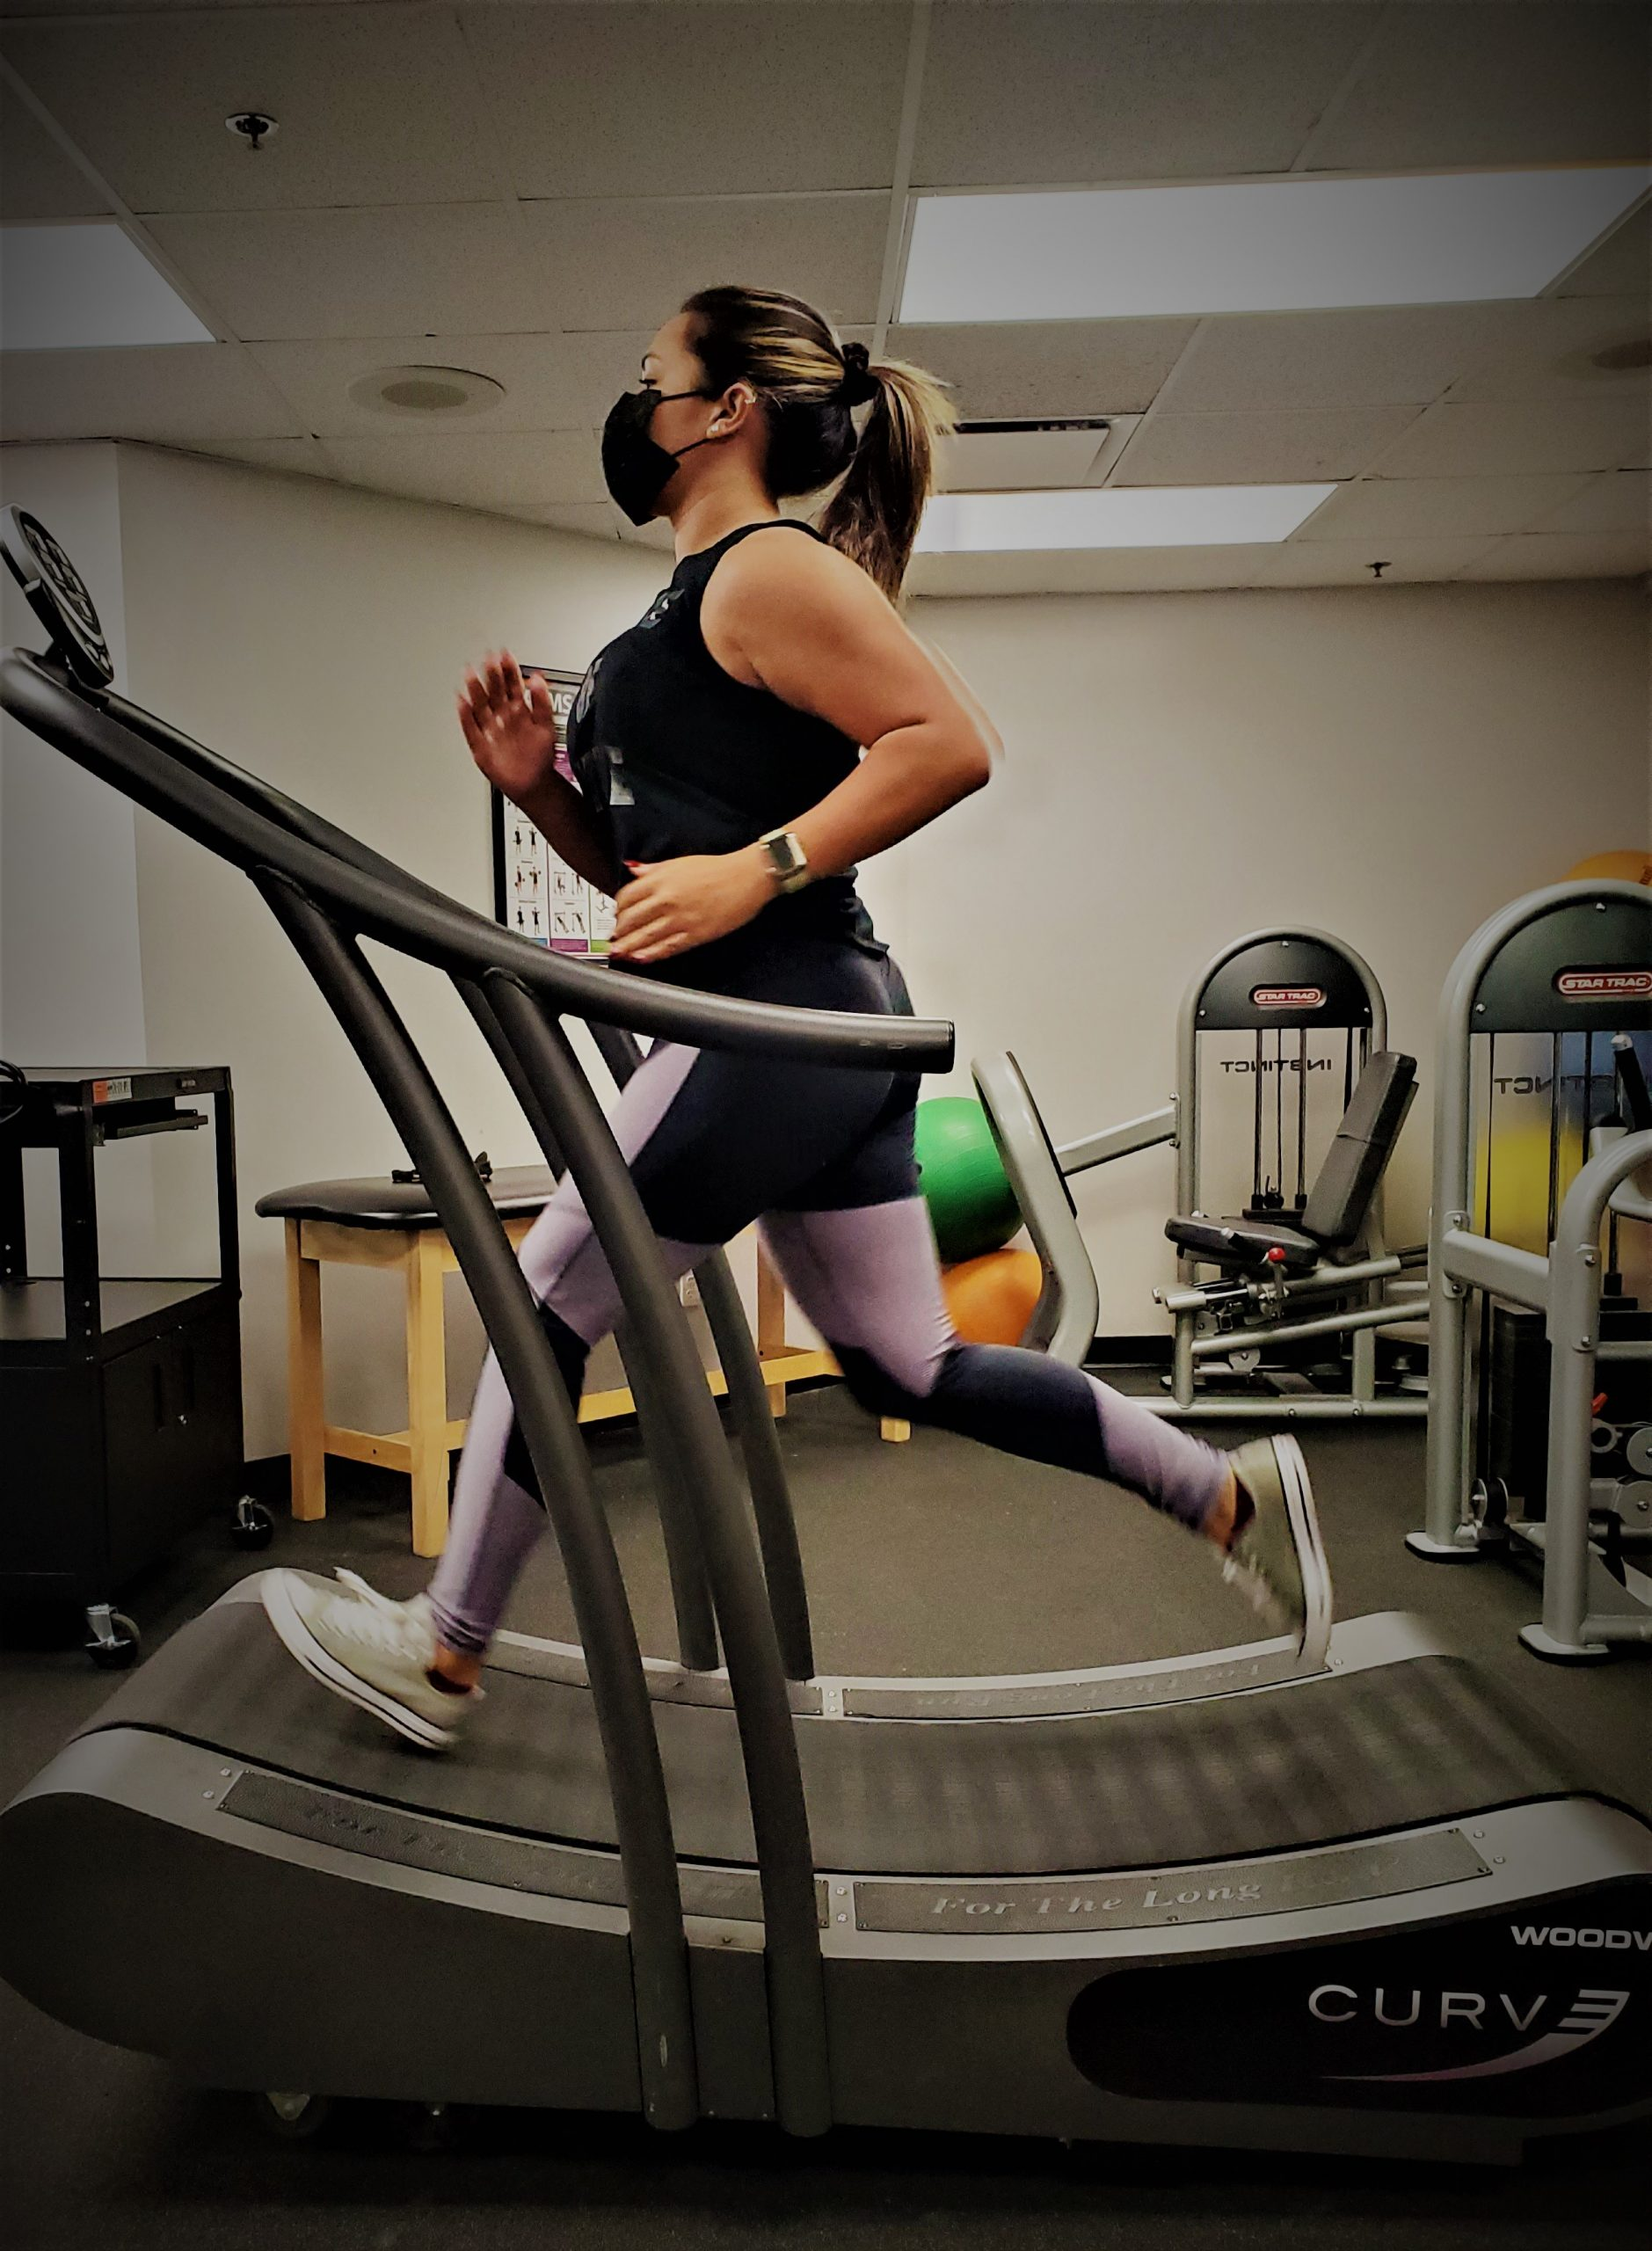 Time of Day Effects on Autonomic Function and Anaerobic Performance using a Non-Motorized Treadmill